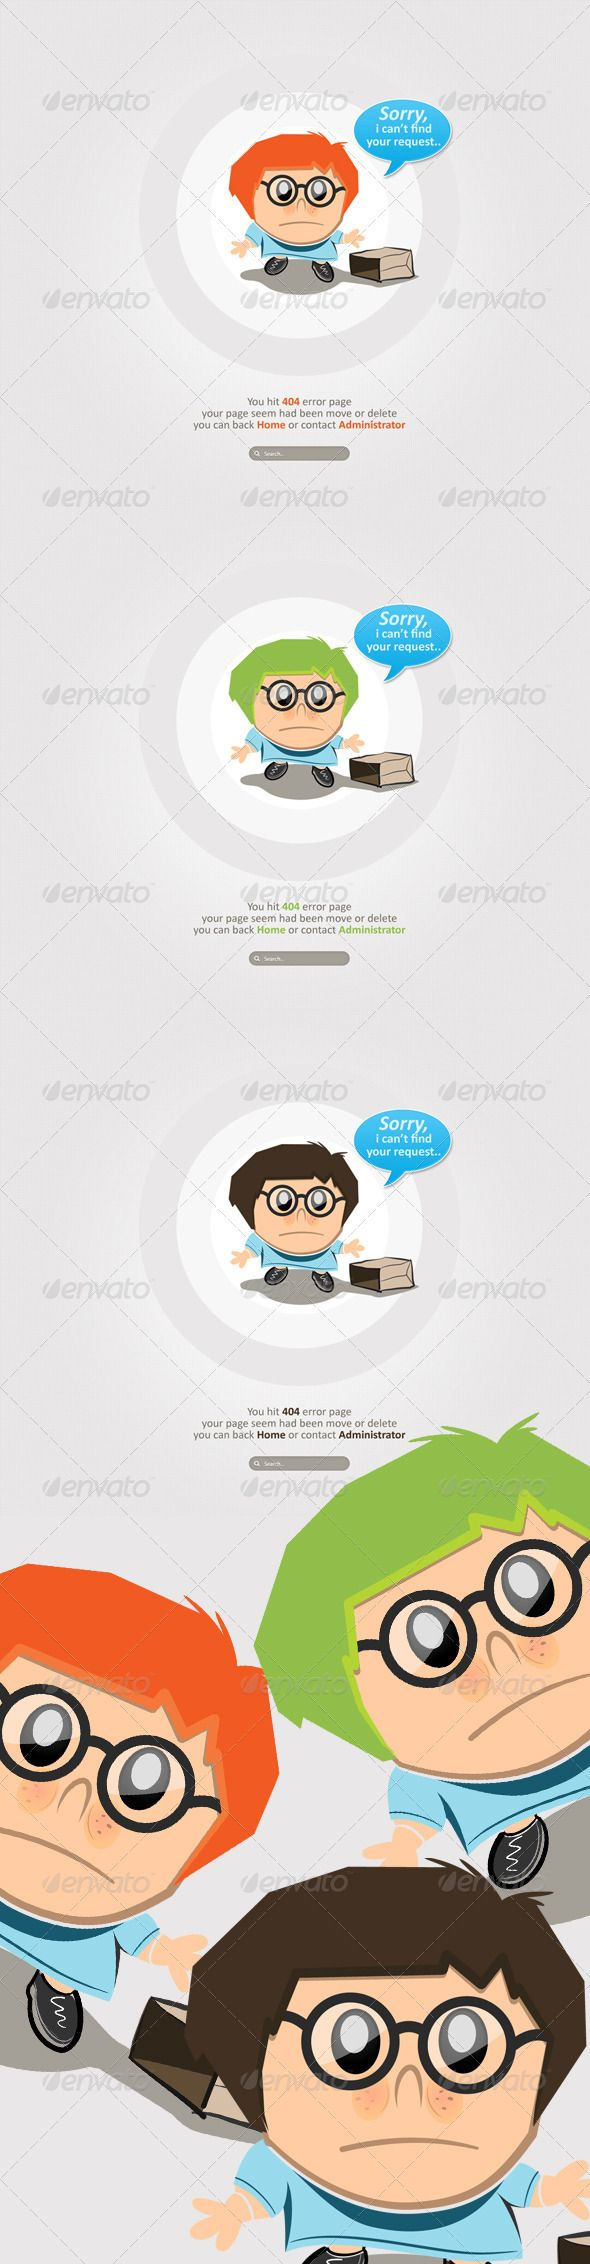 Clean and Simple Character 404 Error  - 404 Pages Web Elements Download here : https://graphicriver.net/item/clean-and-simple-character-404-error-/2621760?s_rank=214&ref=Al-fatih